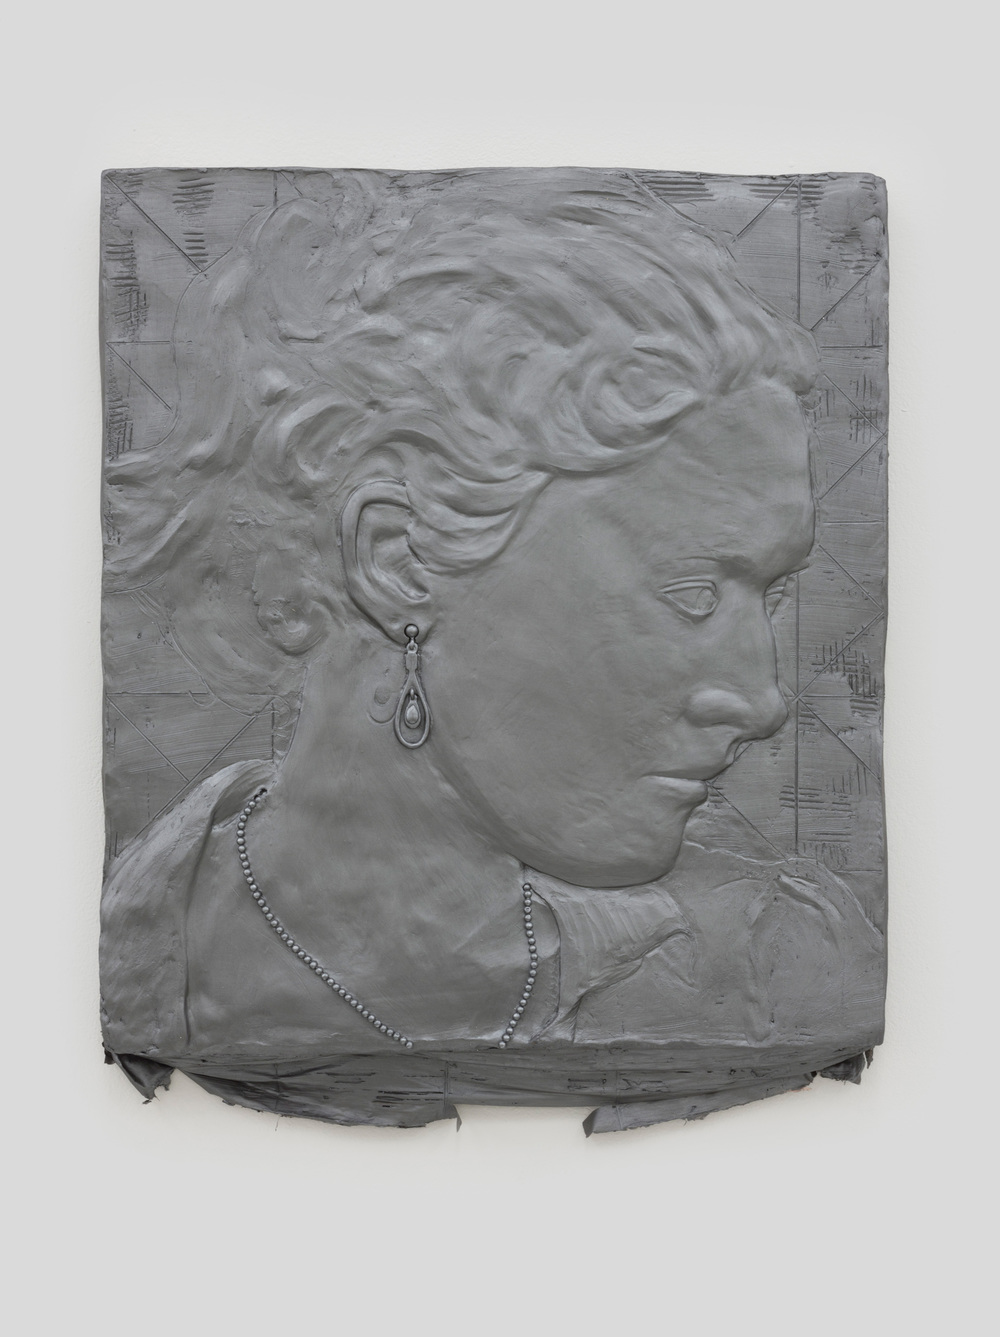 Anthony Miserendino  Annie , 2014 Acrylic paint, gypsum cement, fiberglass cloth, and wood 22 x 20 x 2 inches